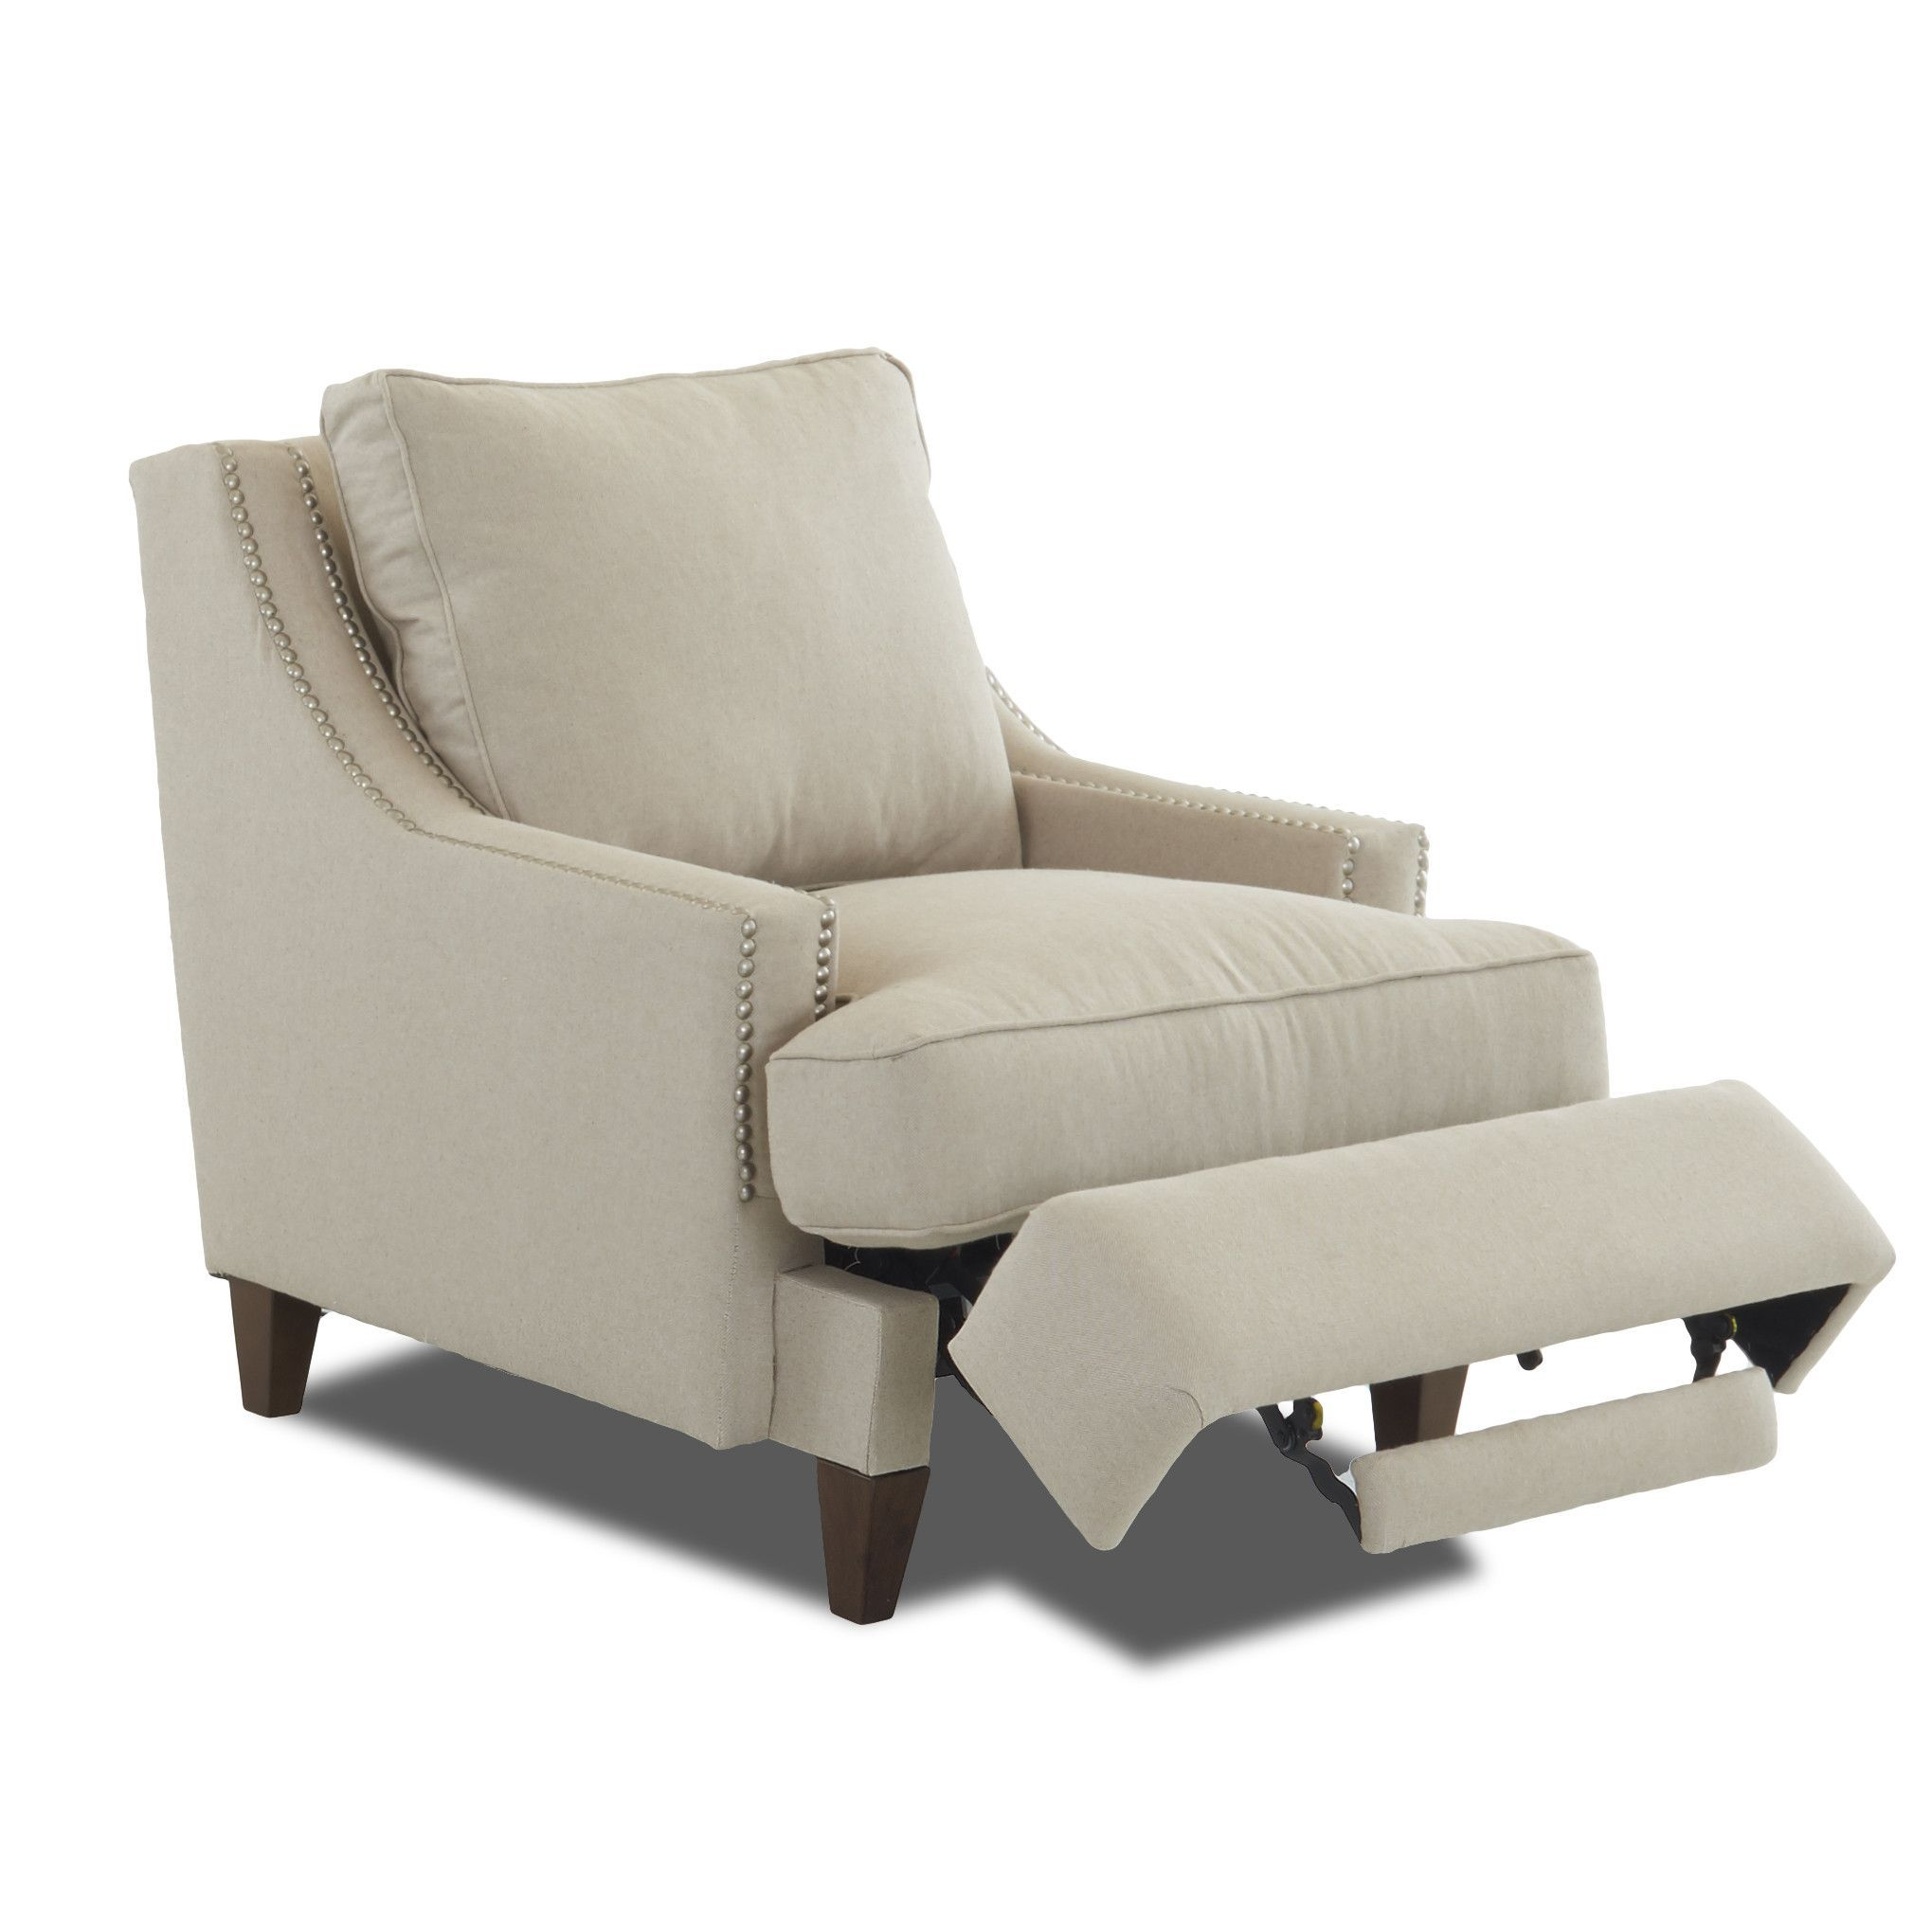 recliner chairs cheap comfortable for bedroom wayfair custom upholstery tricia power hybrid reclining chair recliningsofa